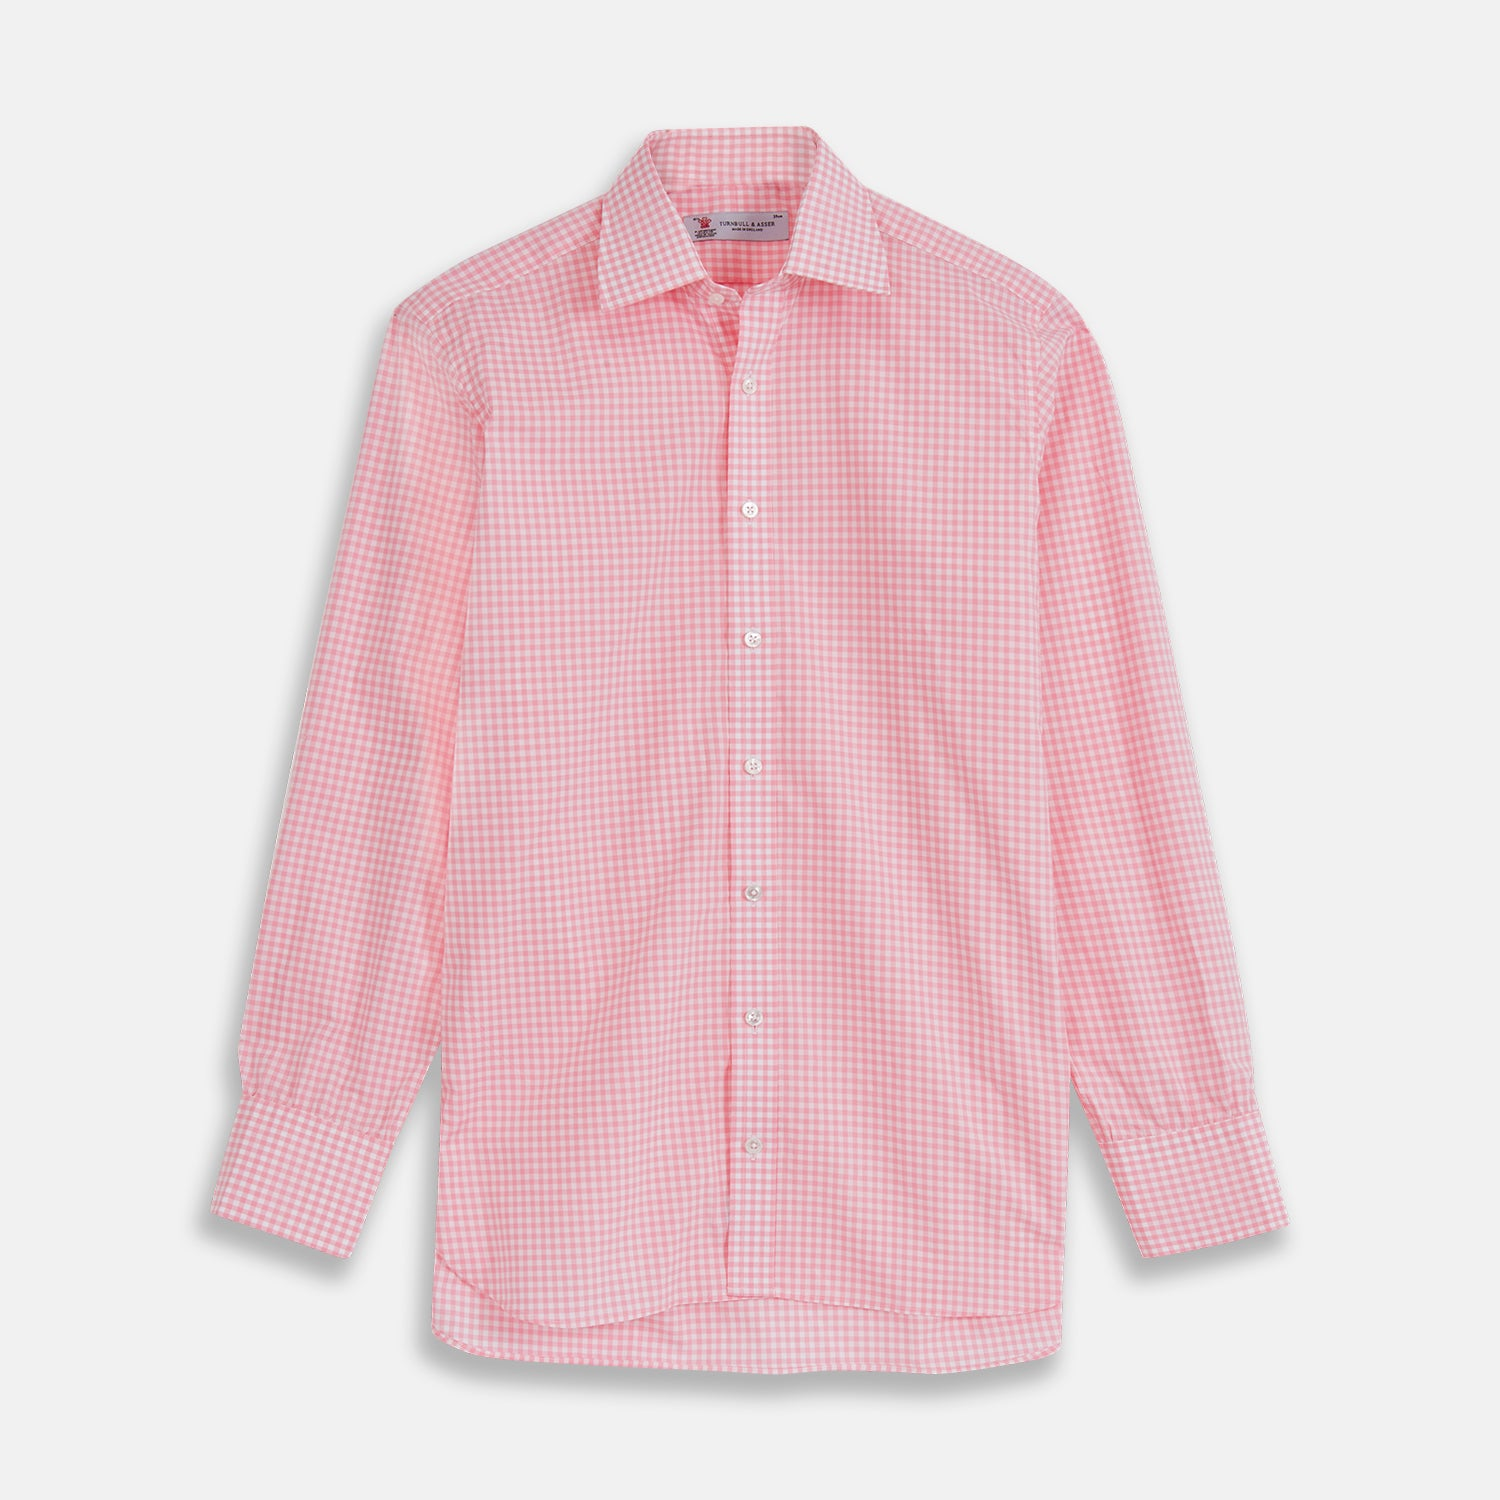 Pink & White Cotton Gingham Check Shirt with T&A Collar and 3-Button Cuffs